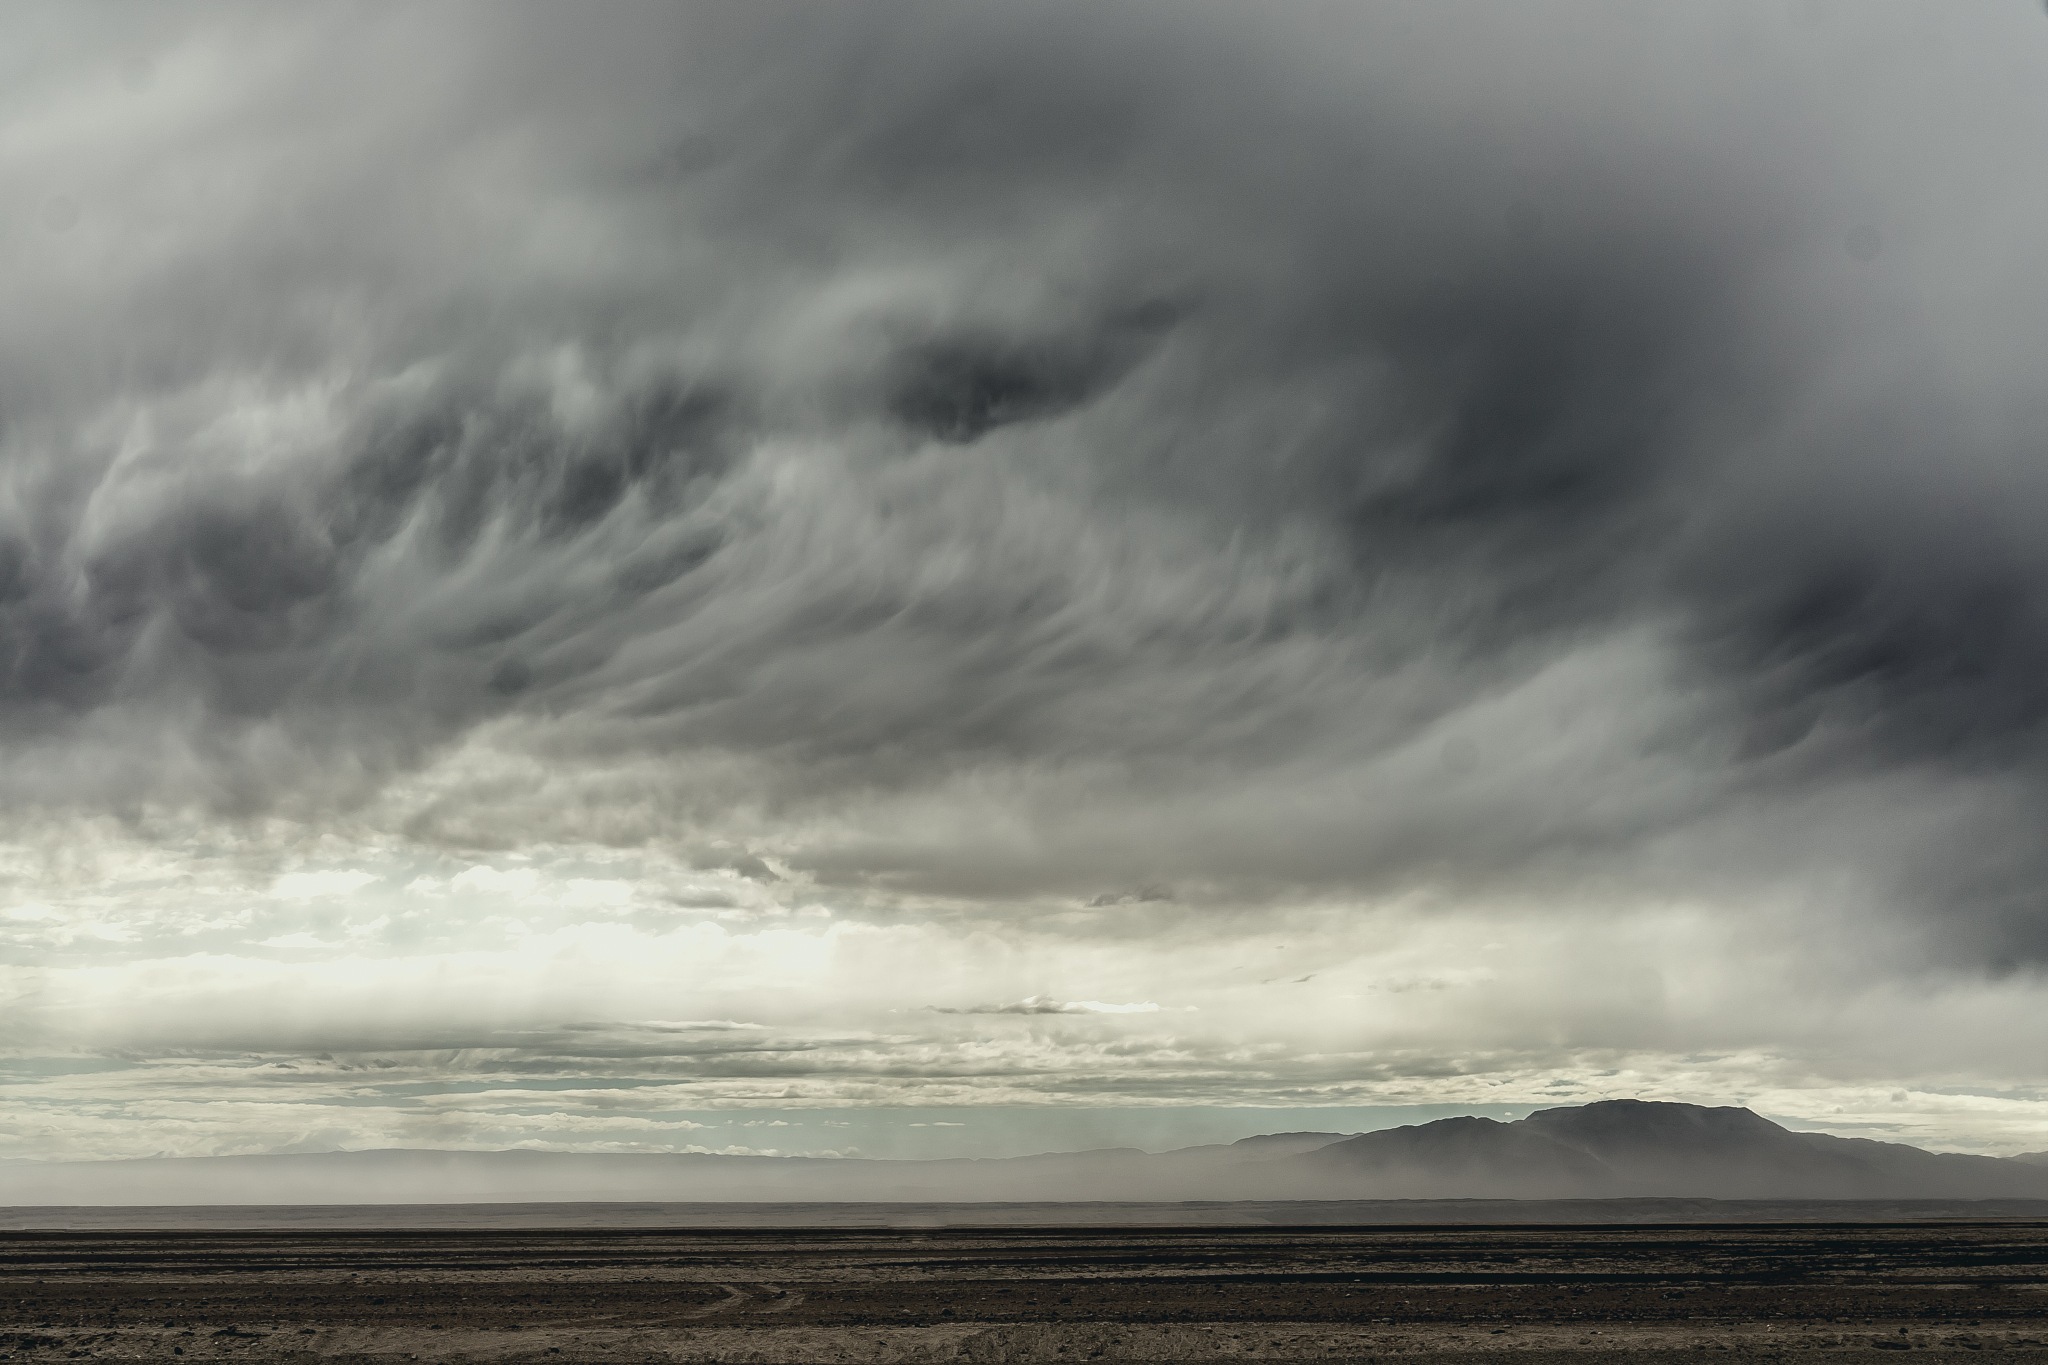 Sand storm approaching by Manuel Fuentes